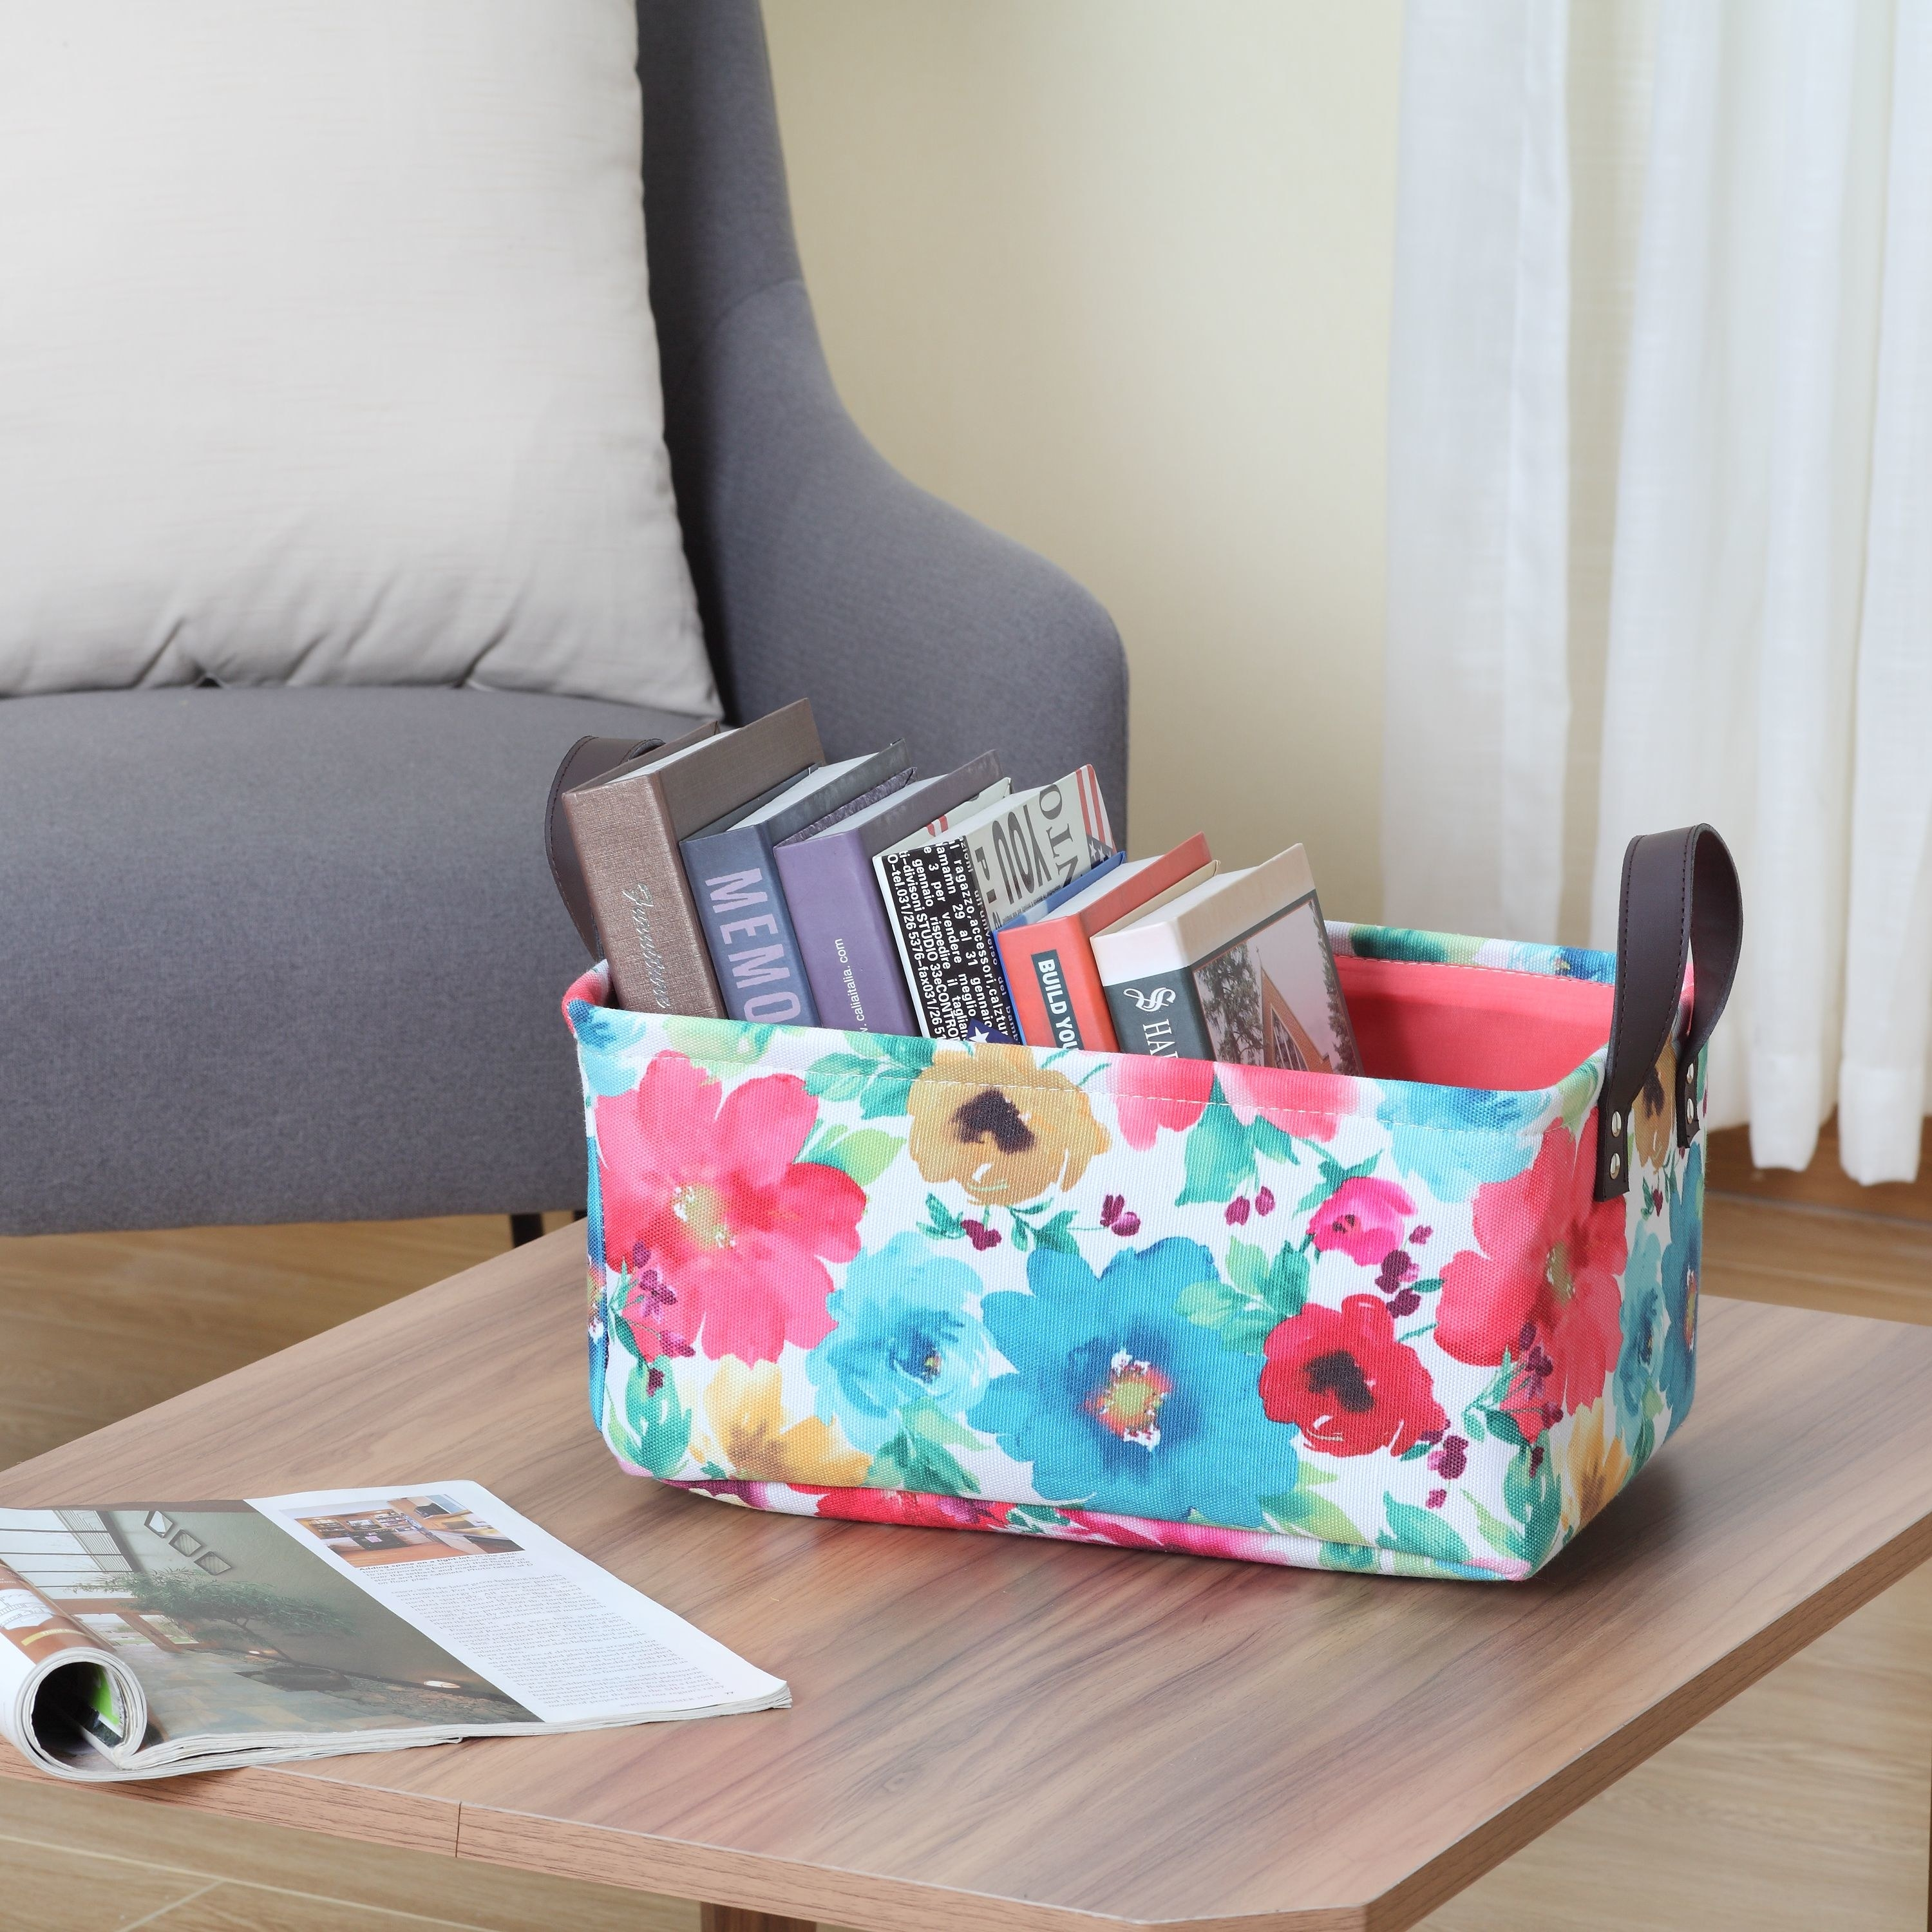 A floral canvas basket full of books